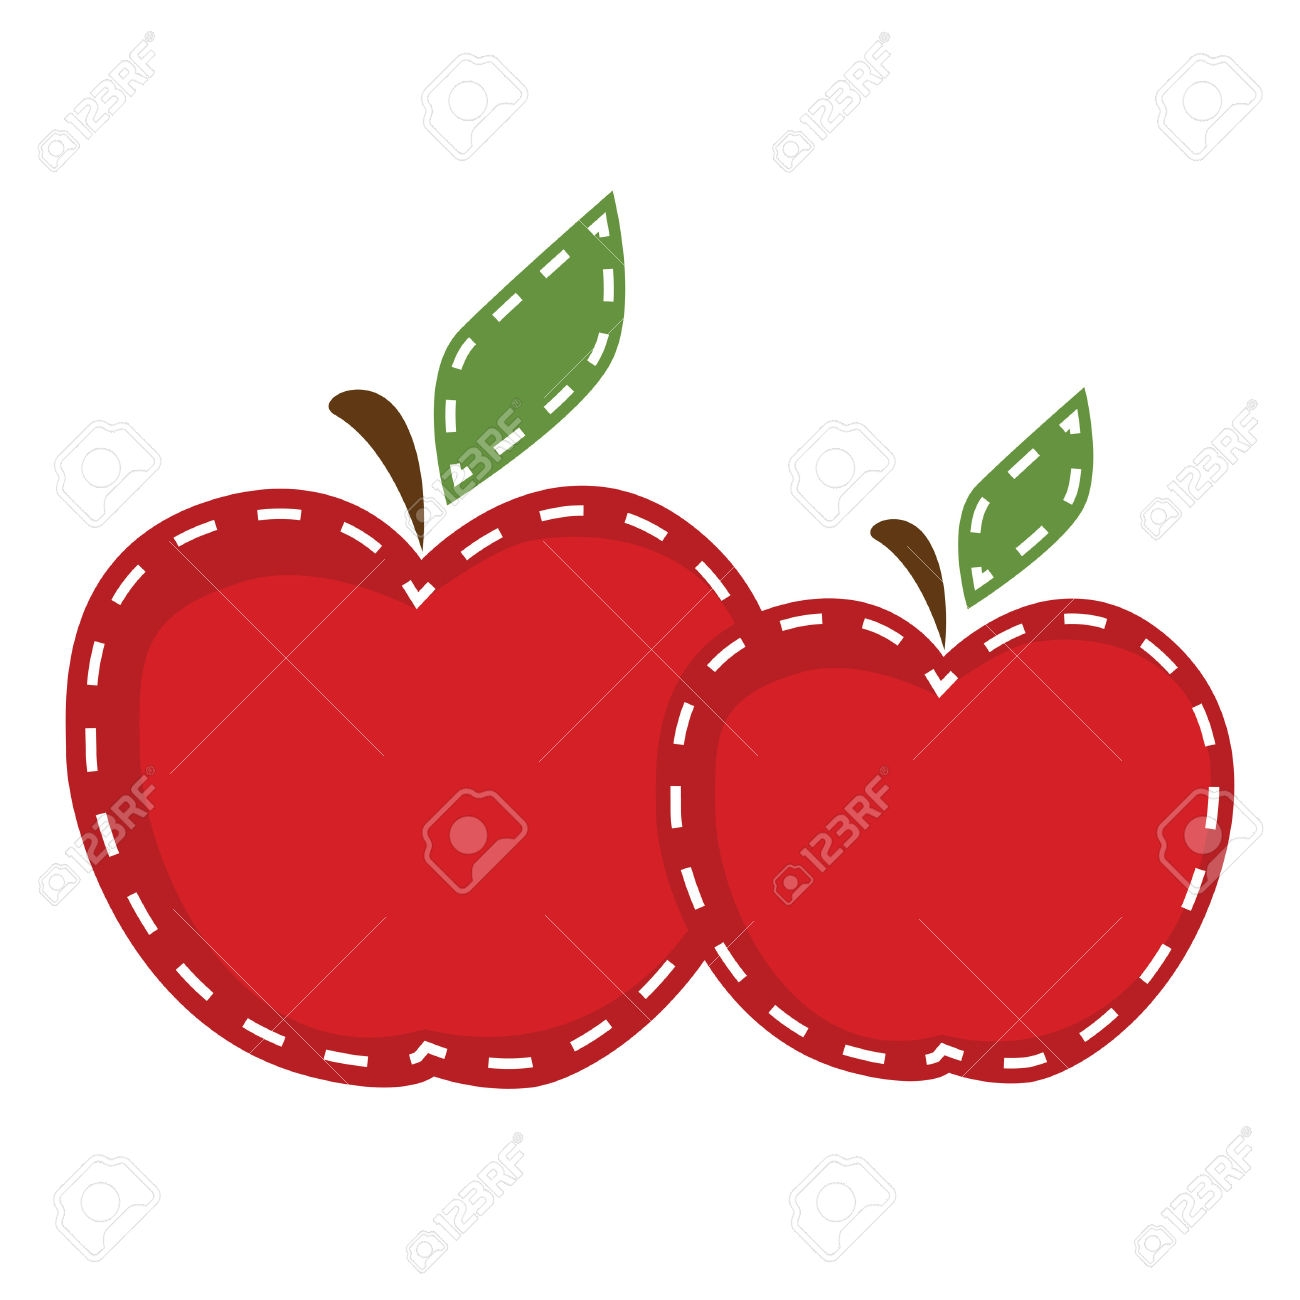 Cute apple stitch clipart.